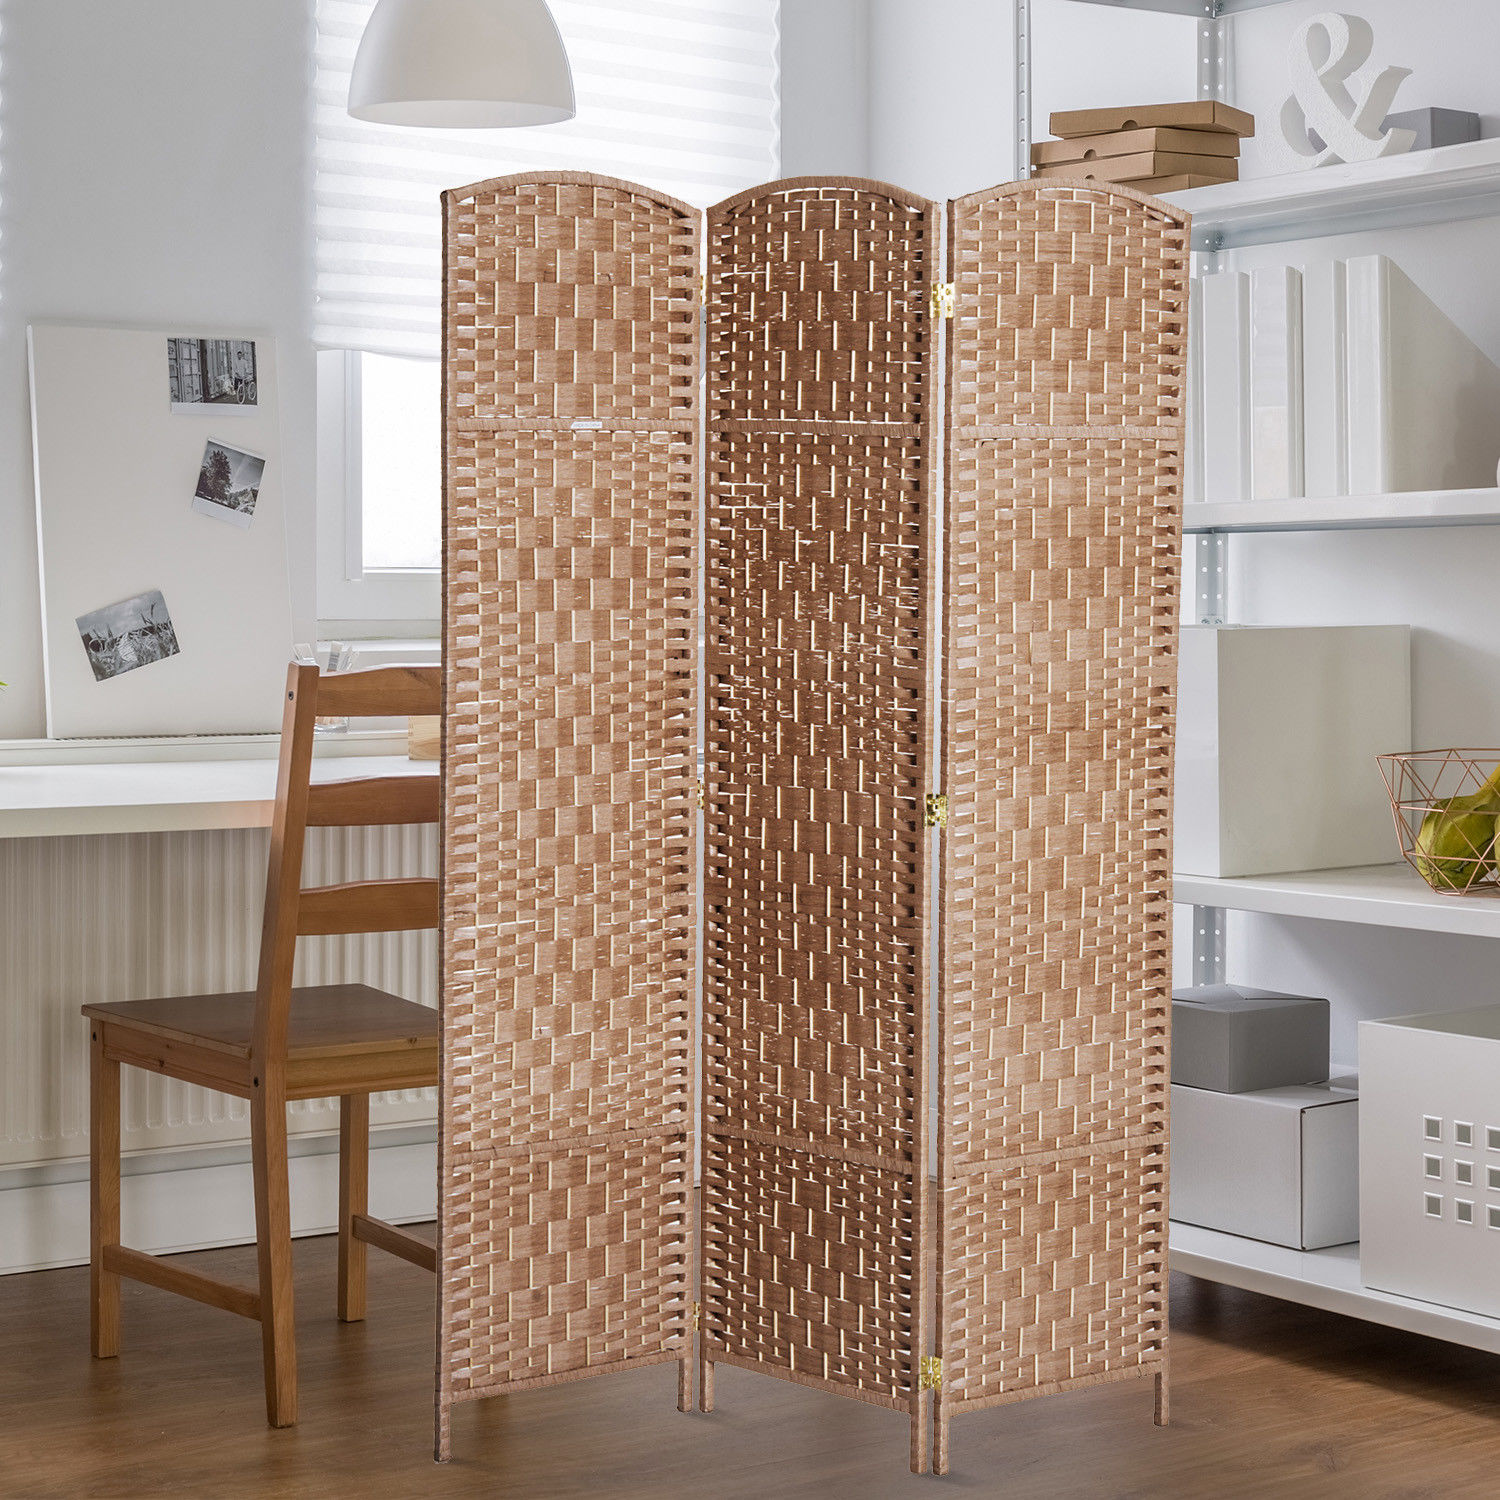 3 Panel Resin Wicker Folding Room Divider Indoor Privacy Screen Home ...